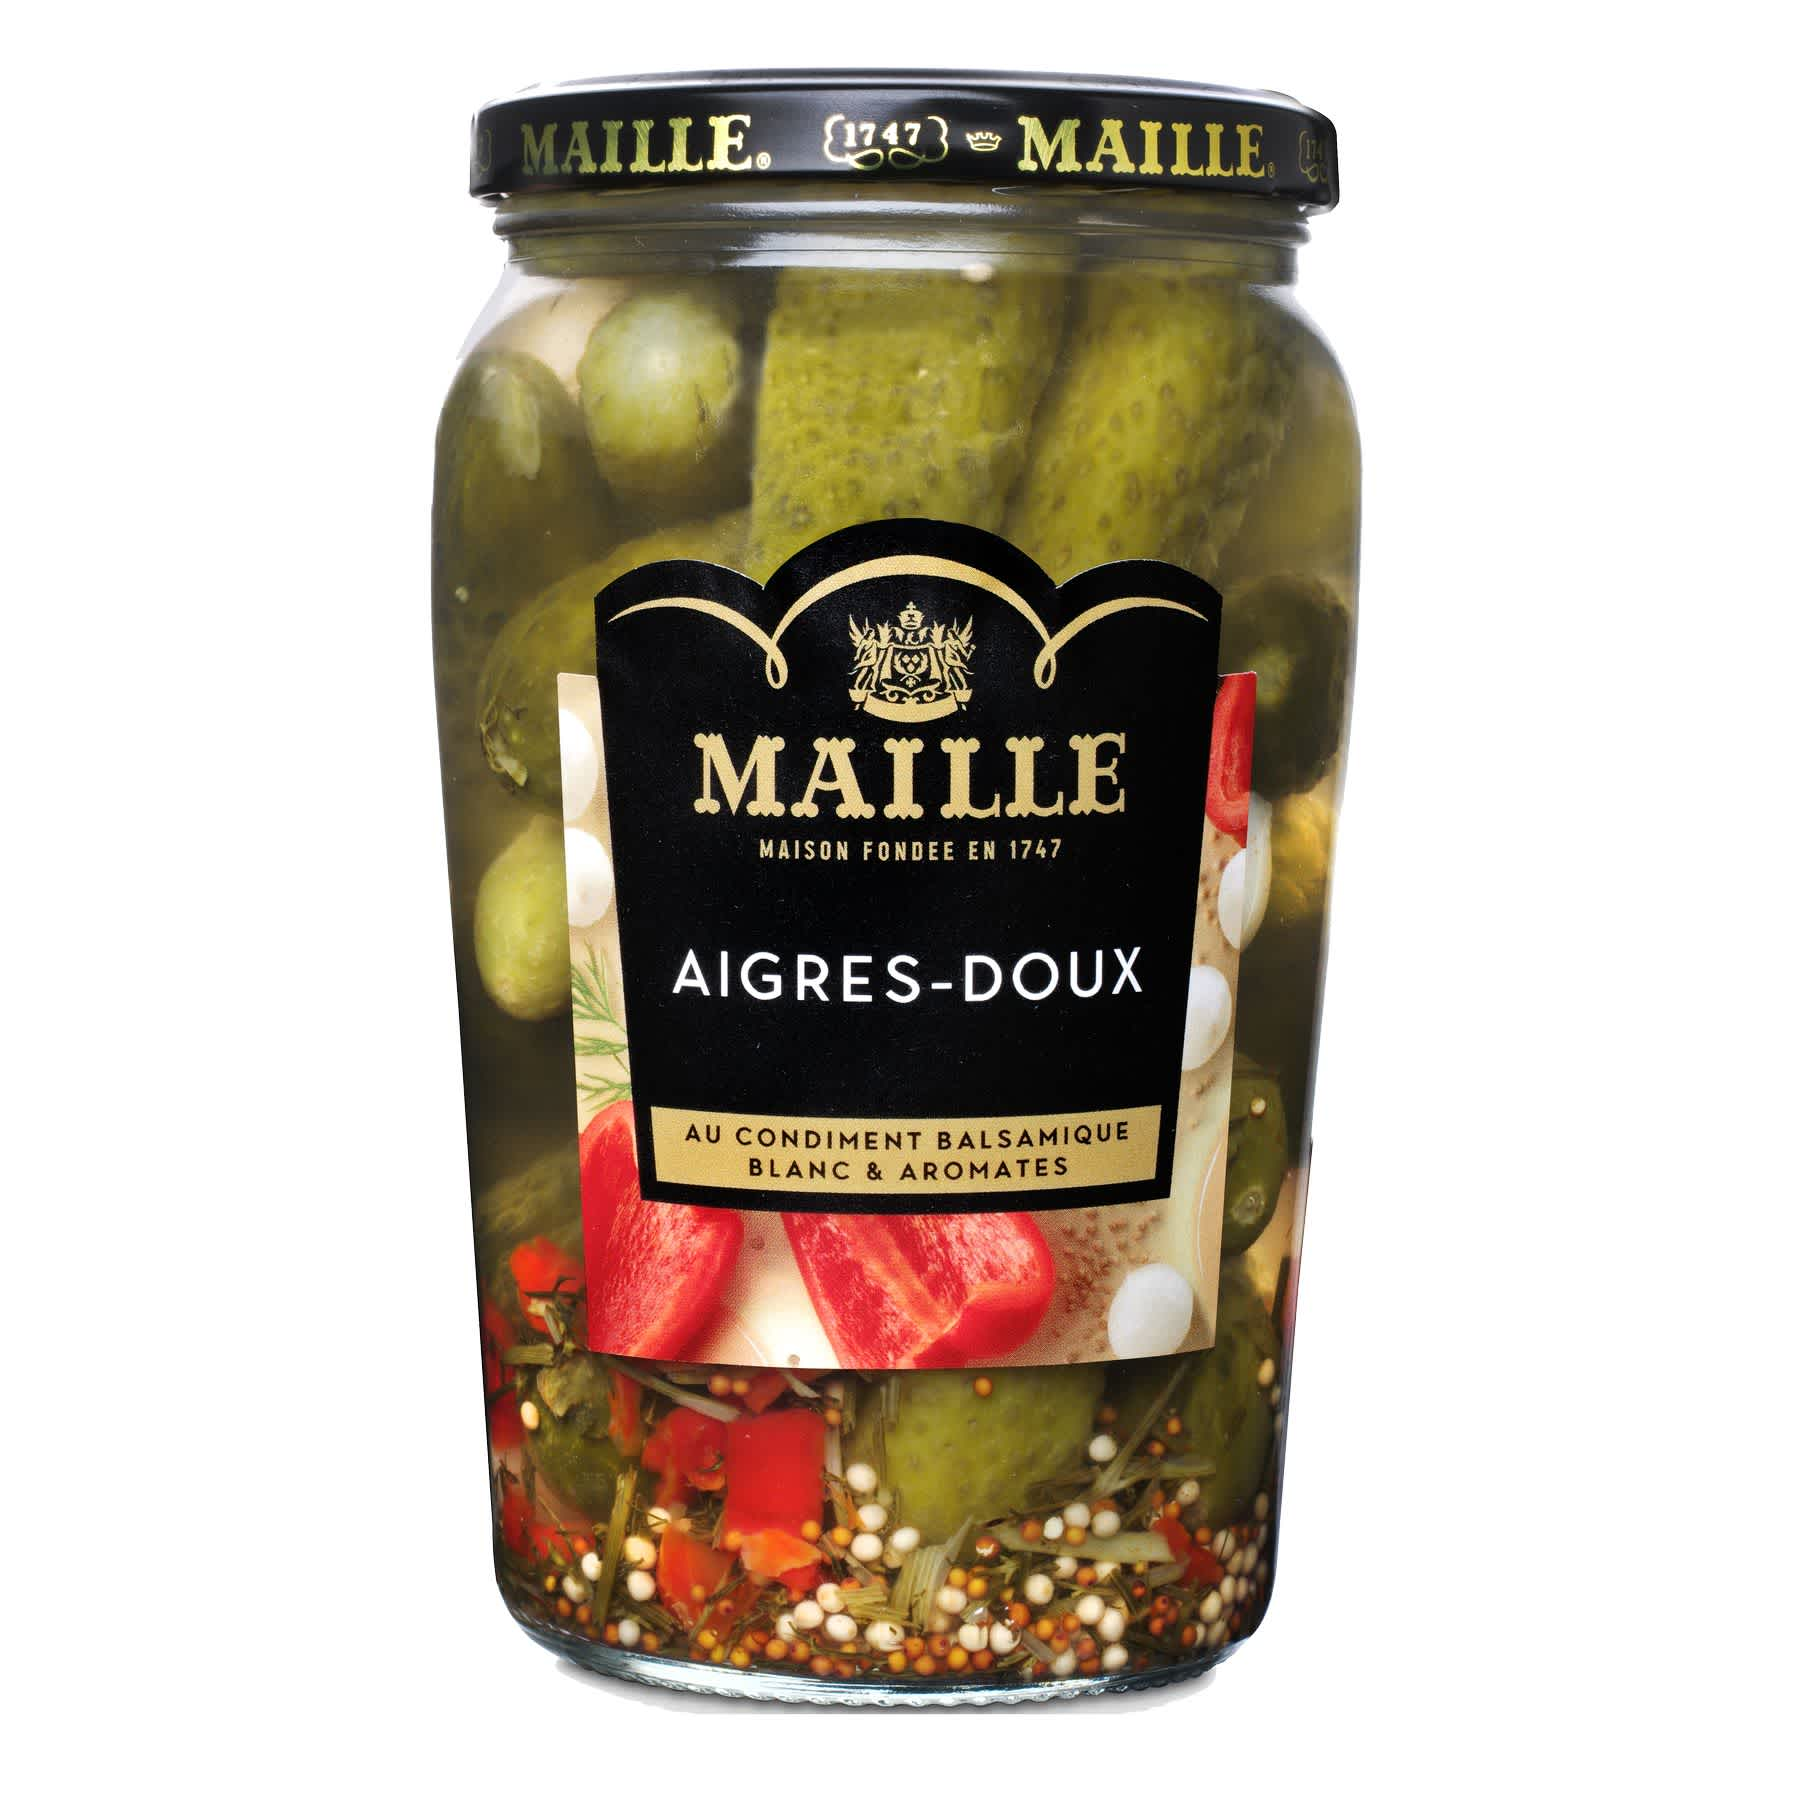 Maille - Cornichons aigres doux, 355 g, overview